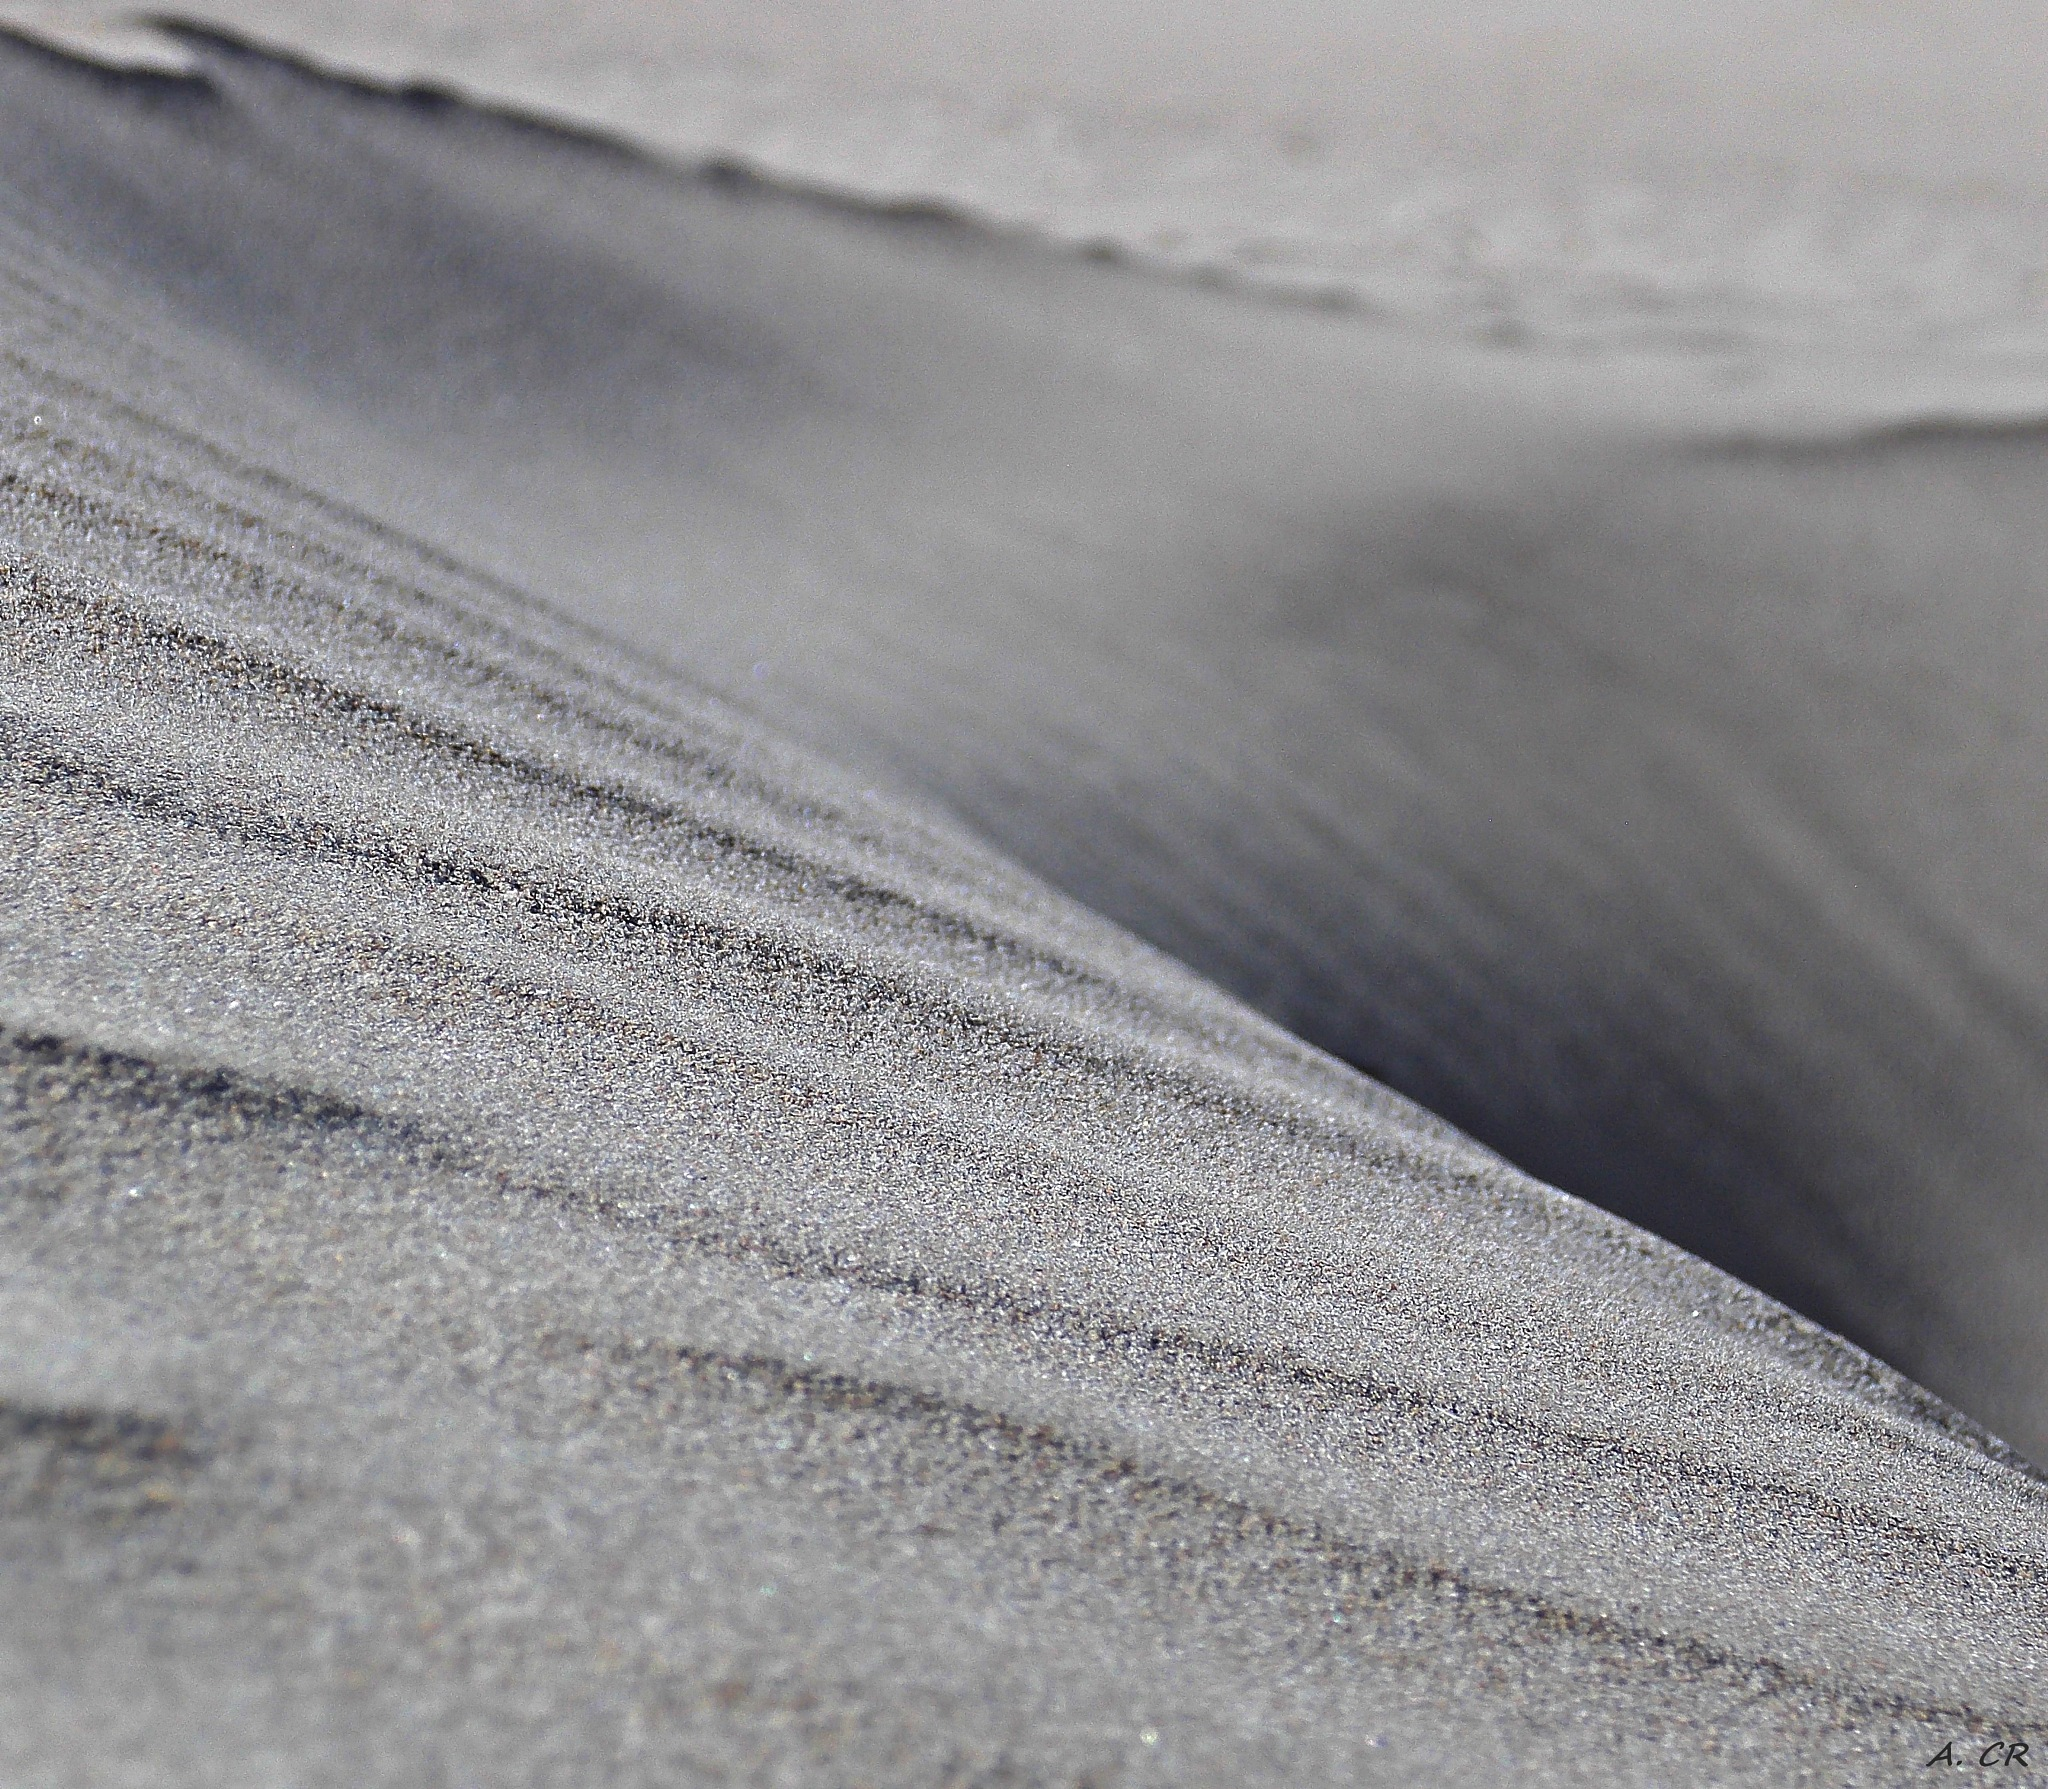 Sand formations by A. Castellano Rodriguez